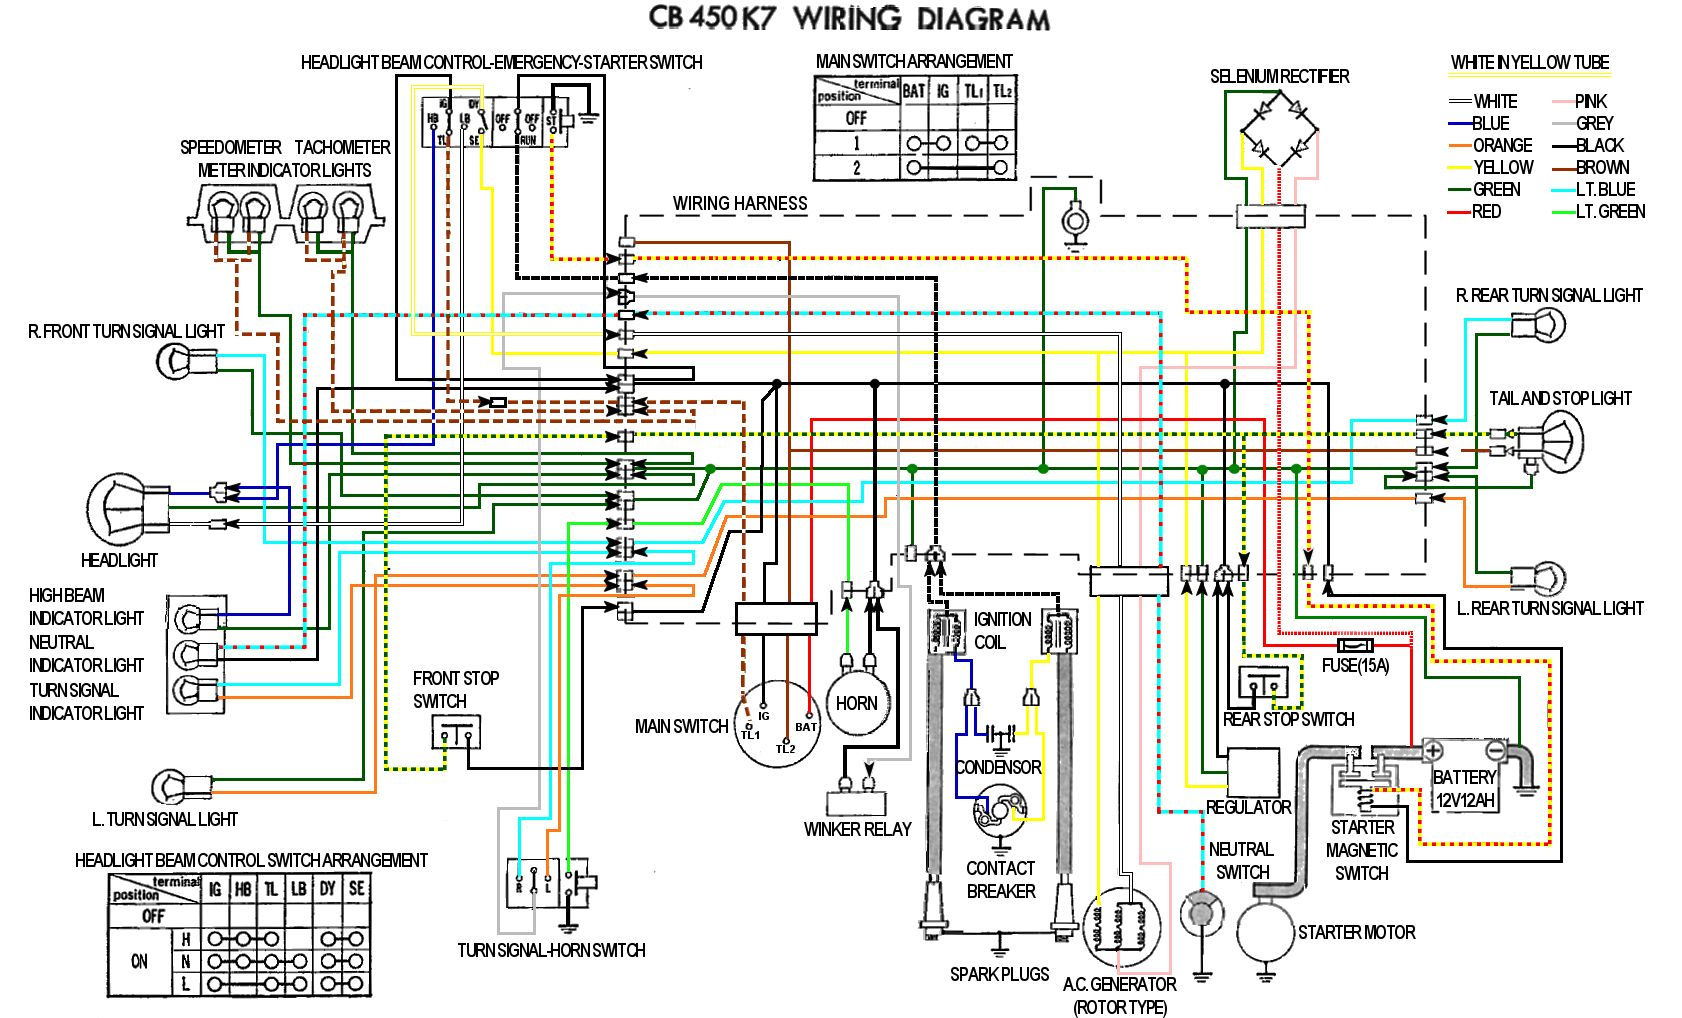 hight resolution of cb450 wiring diagram